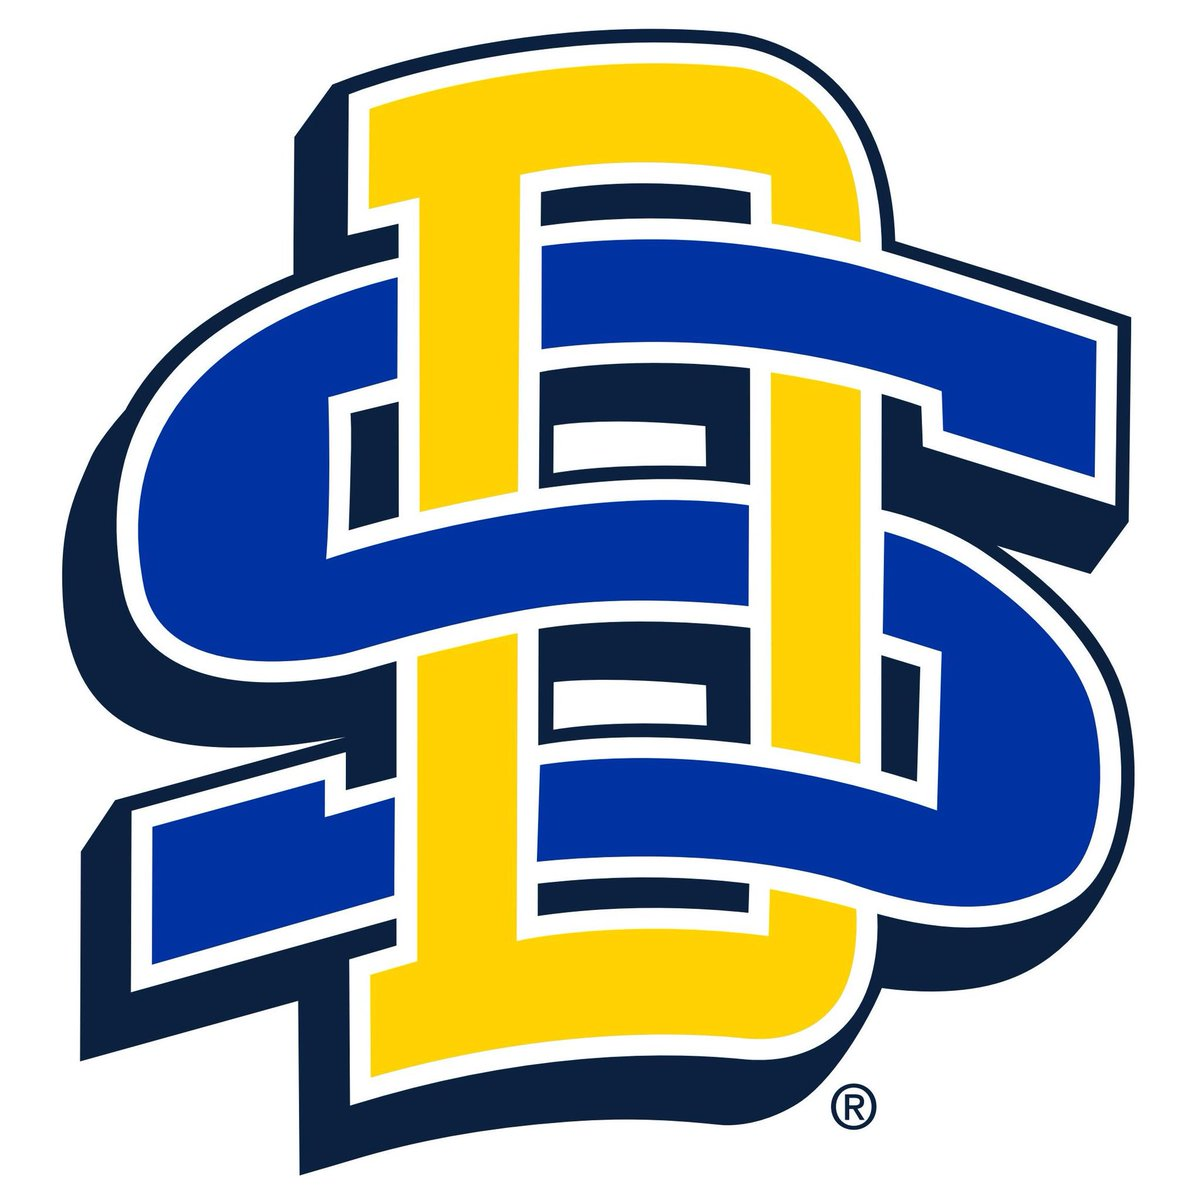 So excited to announce that I've committed to further my academic and volleyball career at South Dakota State! I want to thank everyone that supported me and helped through this process especially Lauren Hansen and all of my coaches! Go jacks!!🐰💙